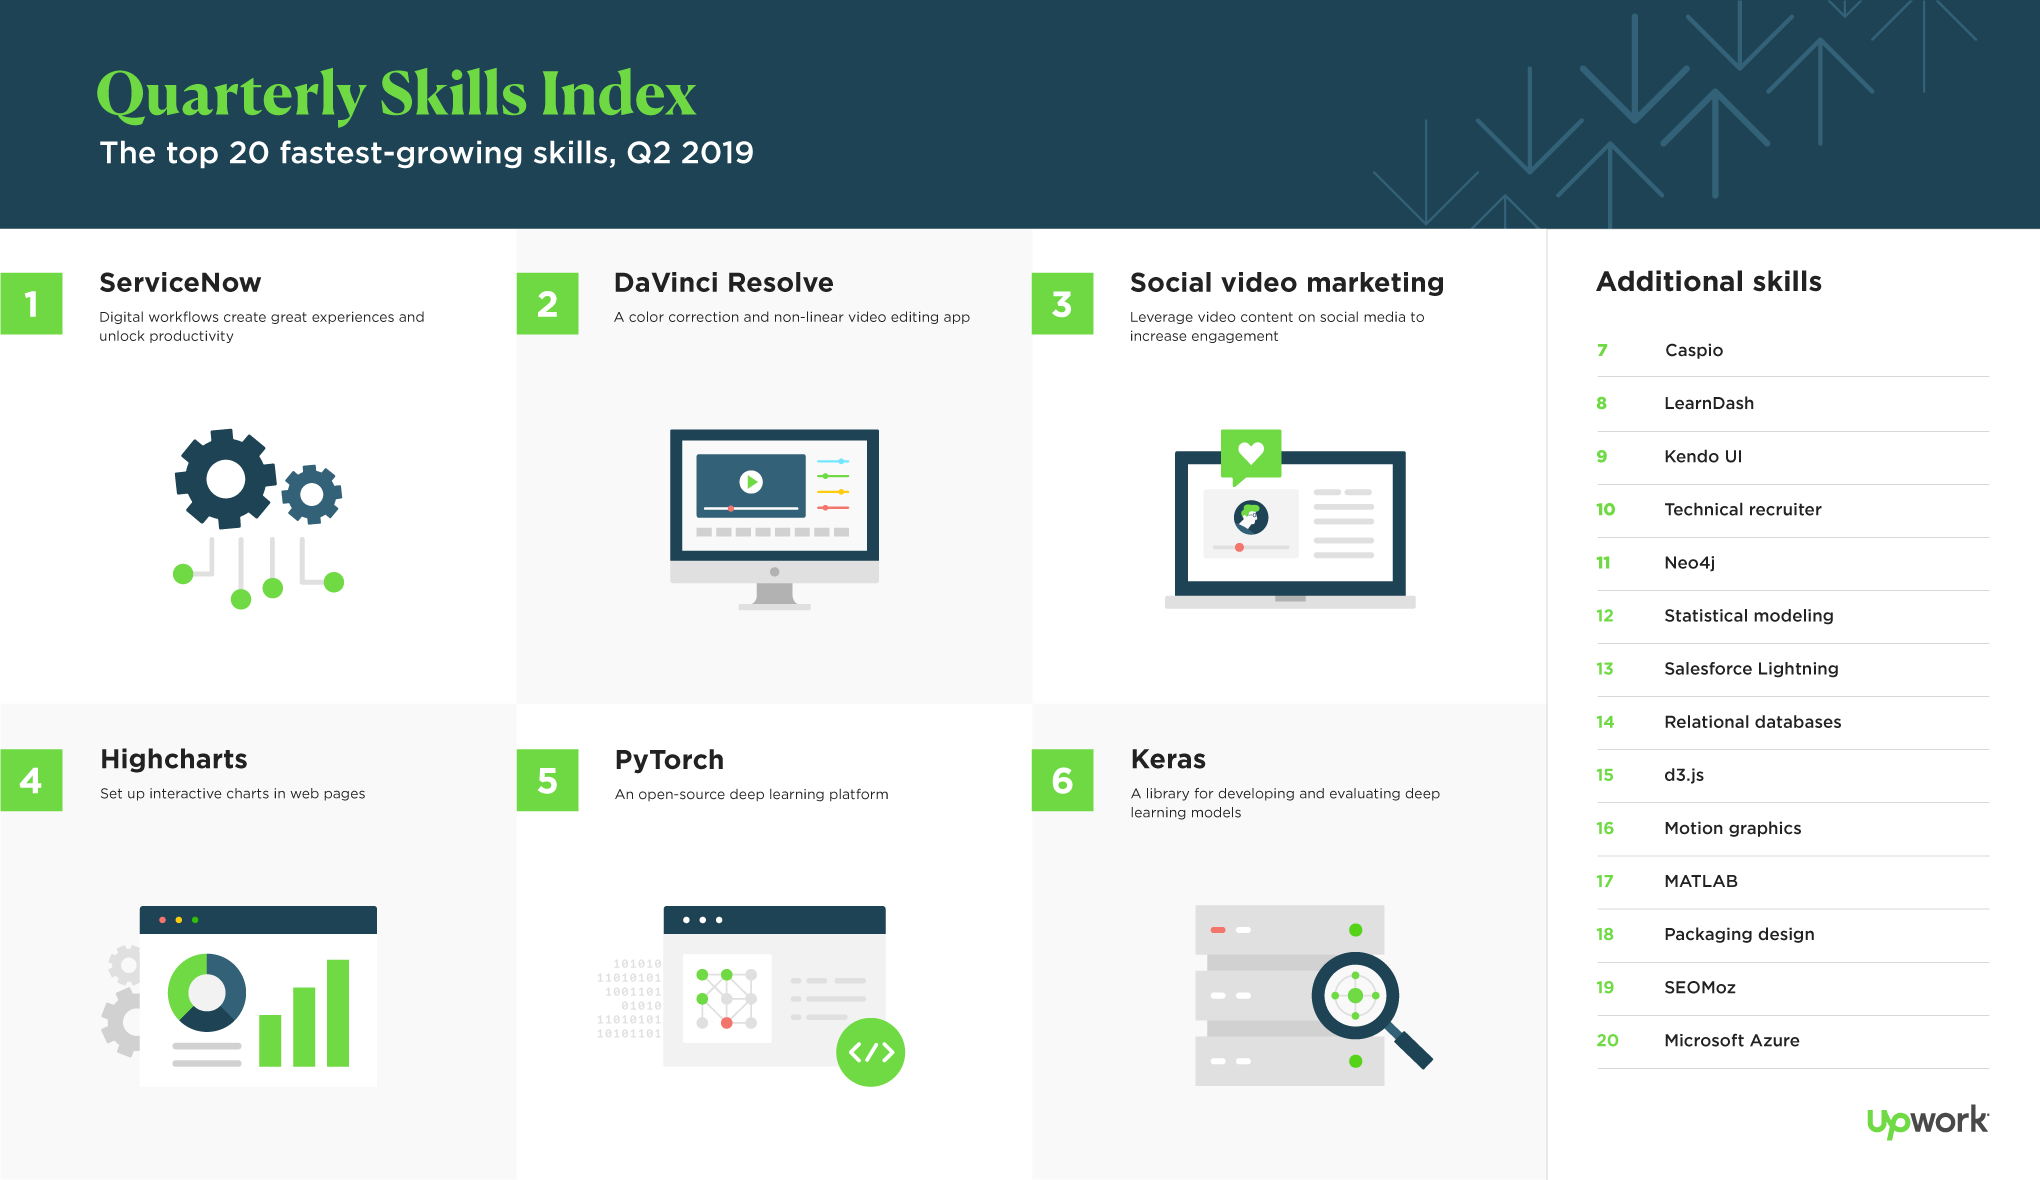 Q2 2019 Skills Index Businesses Rely on Freelance Talent